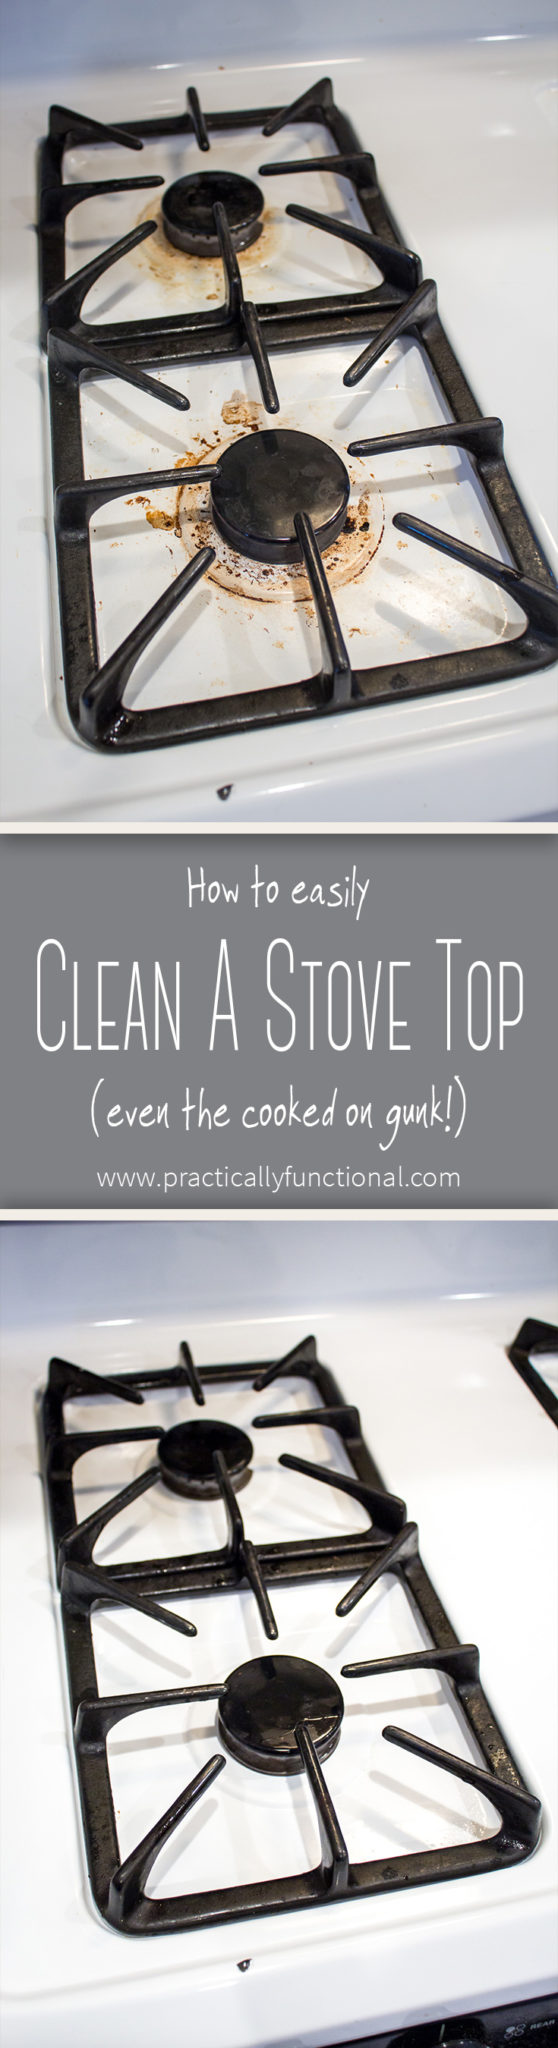 How to clean a stove top with baking soda and hydrogen peroxide